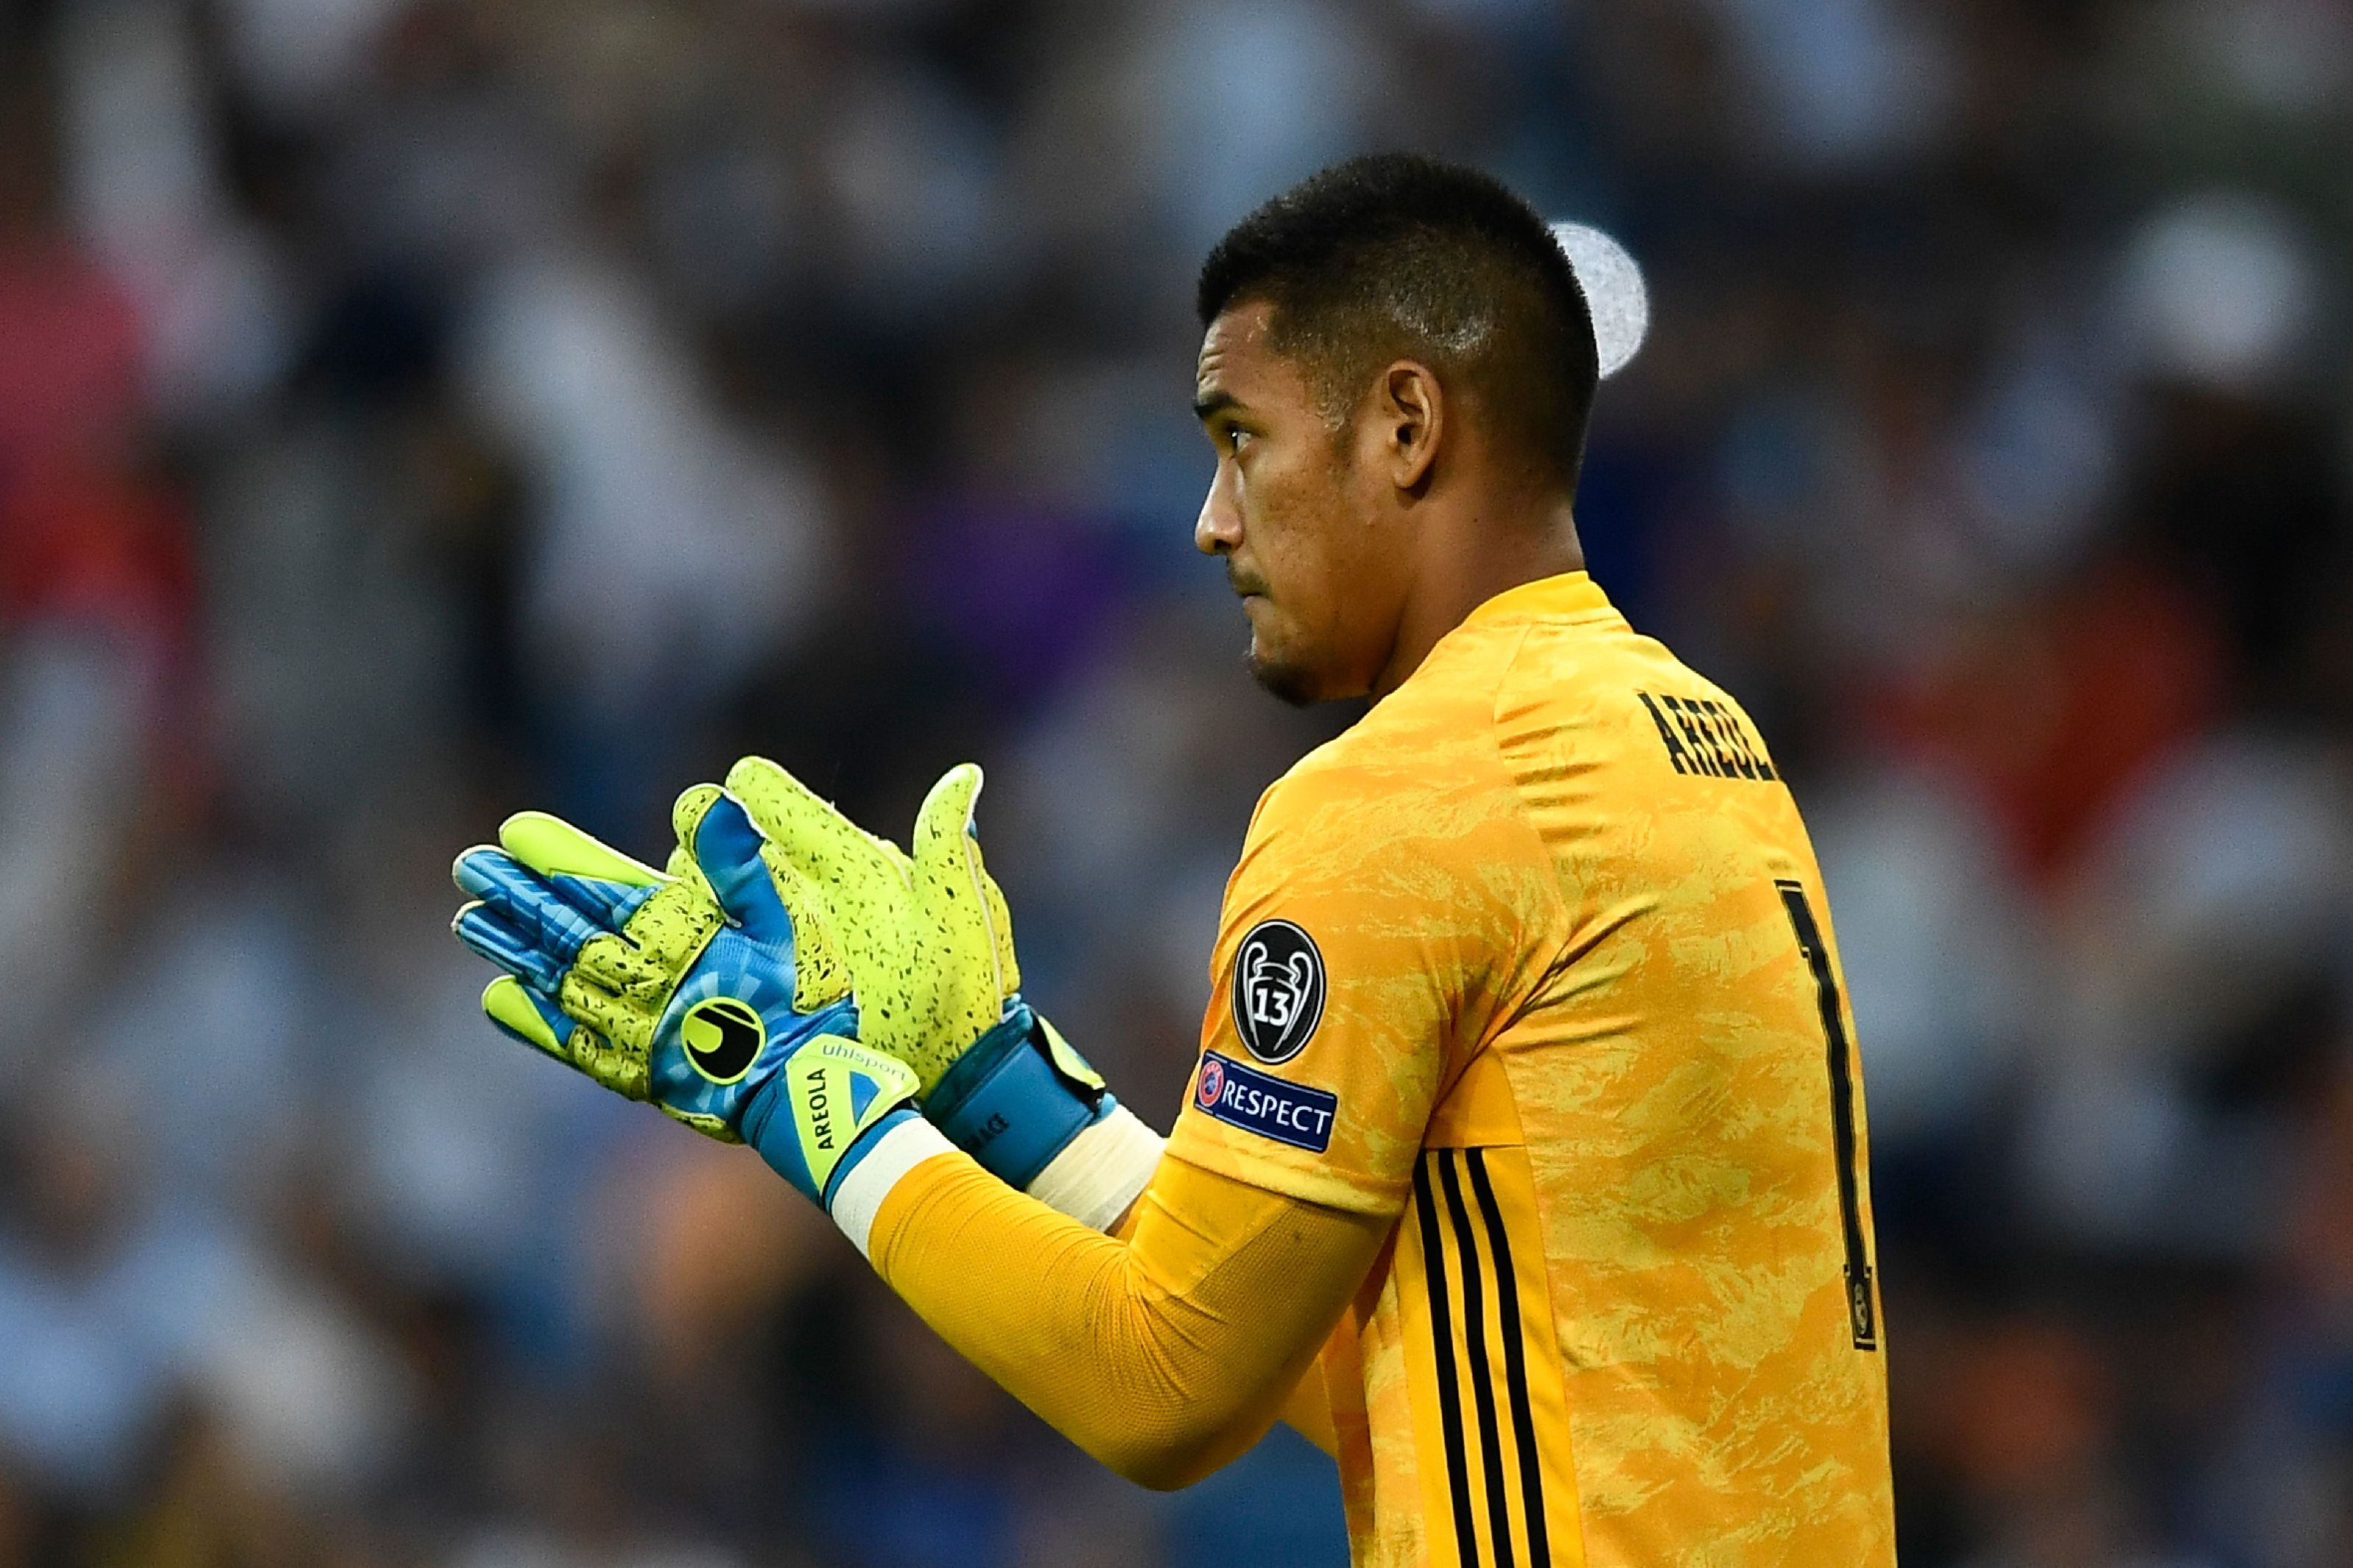 Real Madrid: Alphonse Areola has earned the opportunity to start